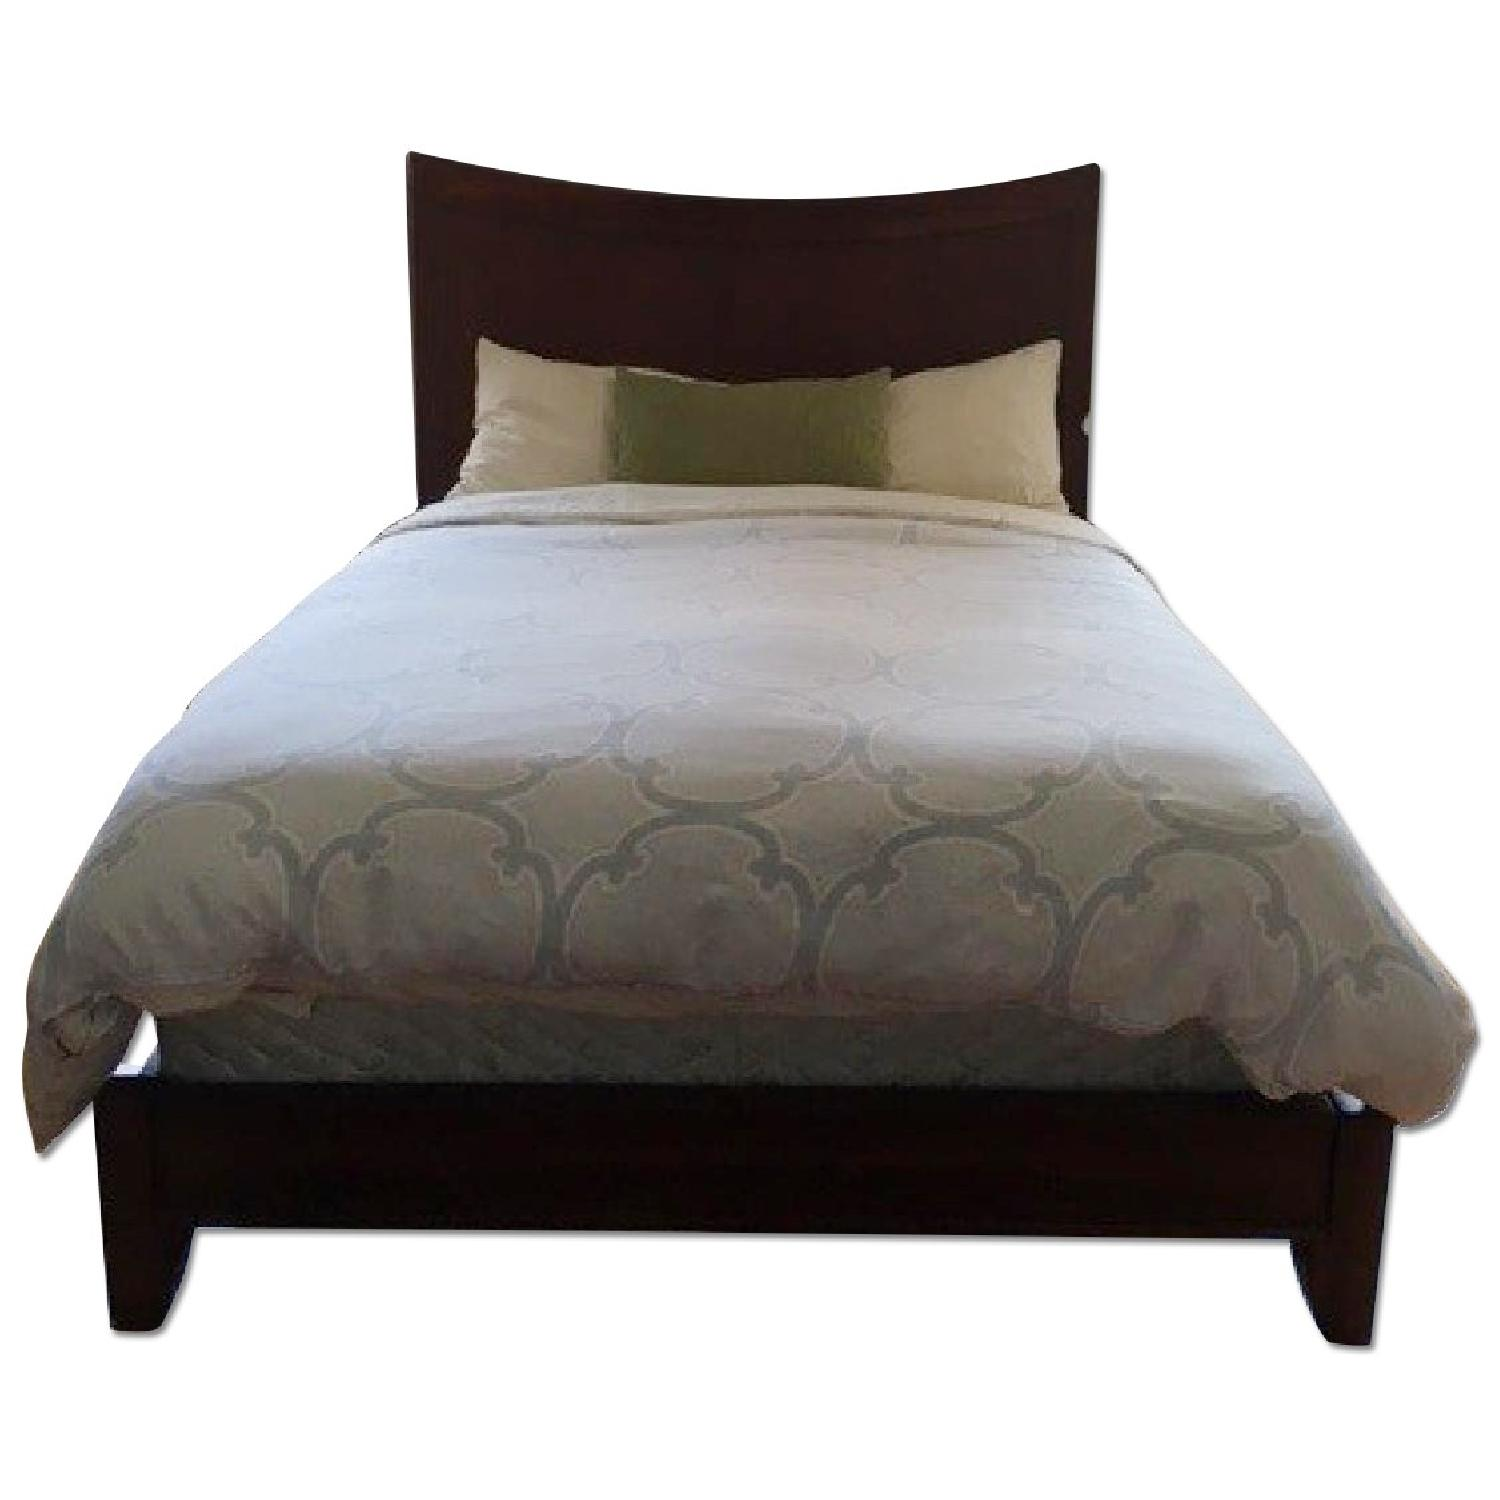 Queen Size Bed Frame w/ Headboard - image-0